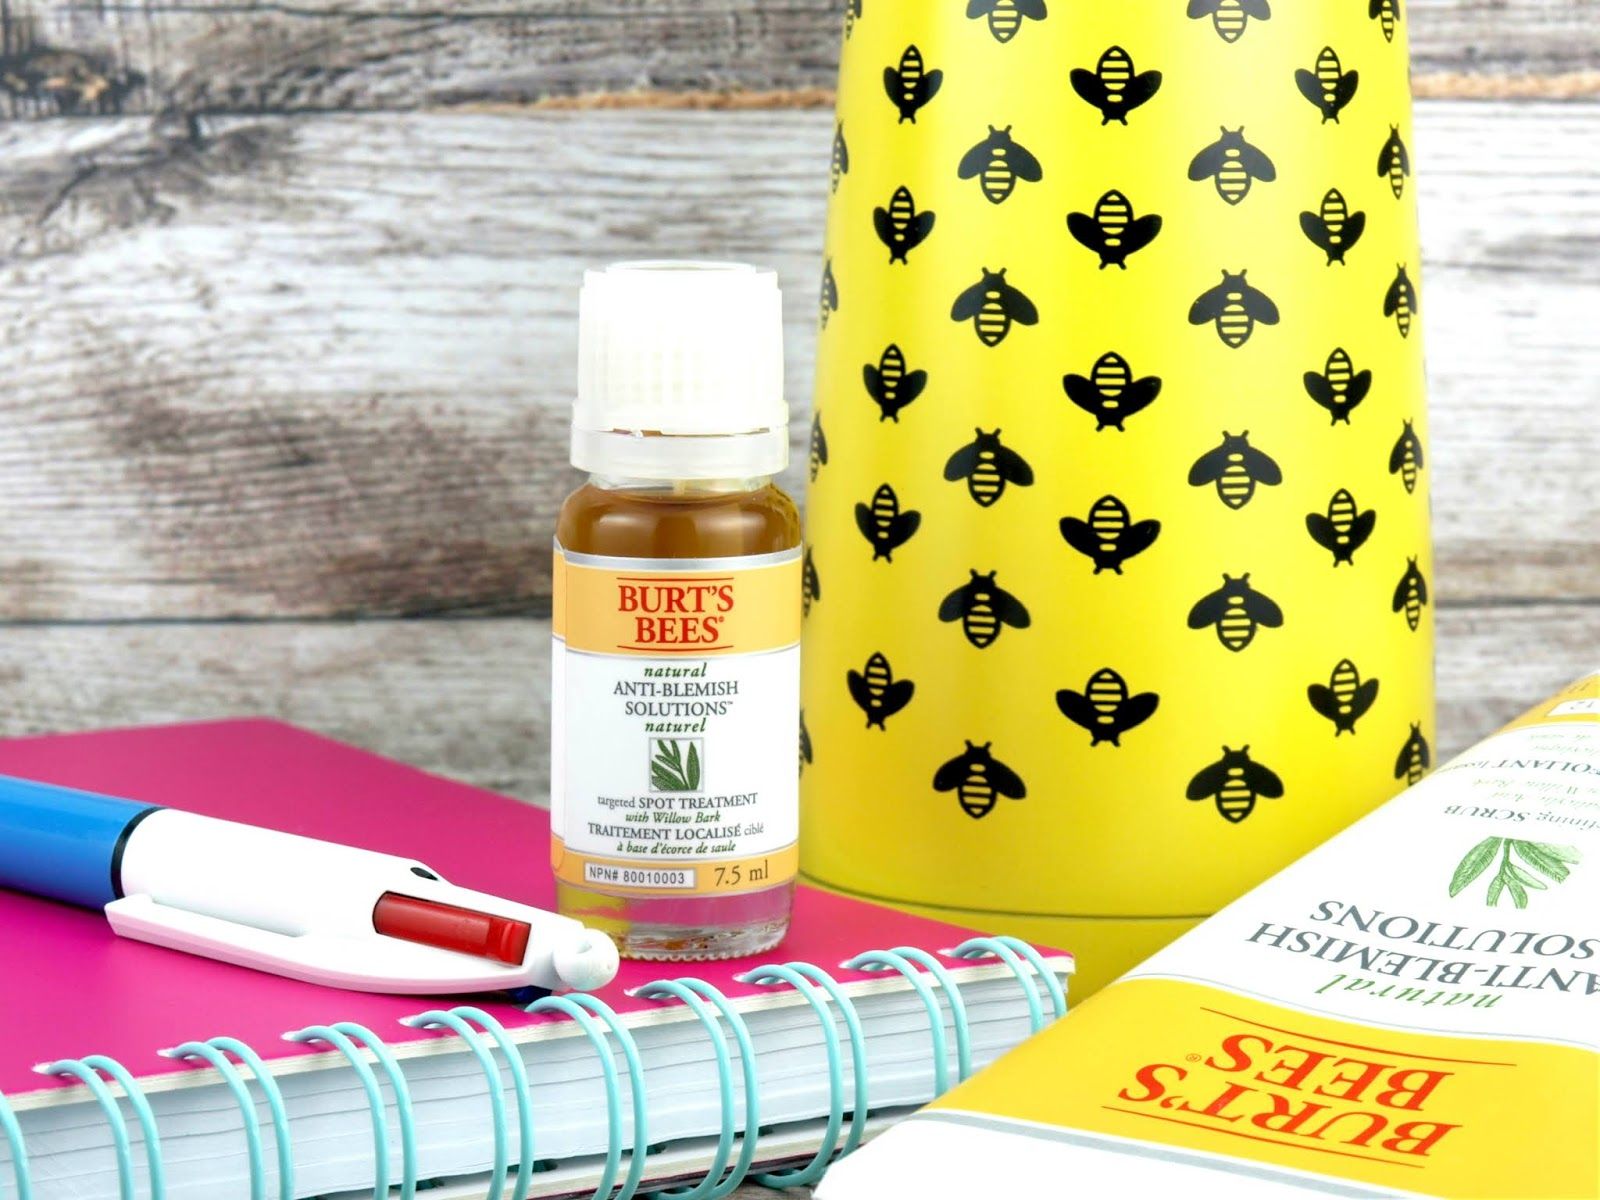 Burt's Bees | Natural Anti-Blemish Solutions Target Spot Treatment: Review